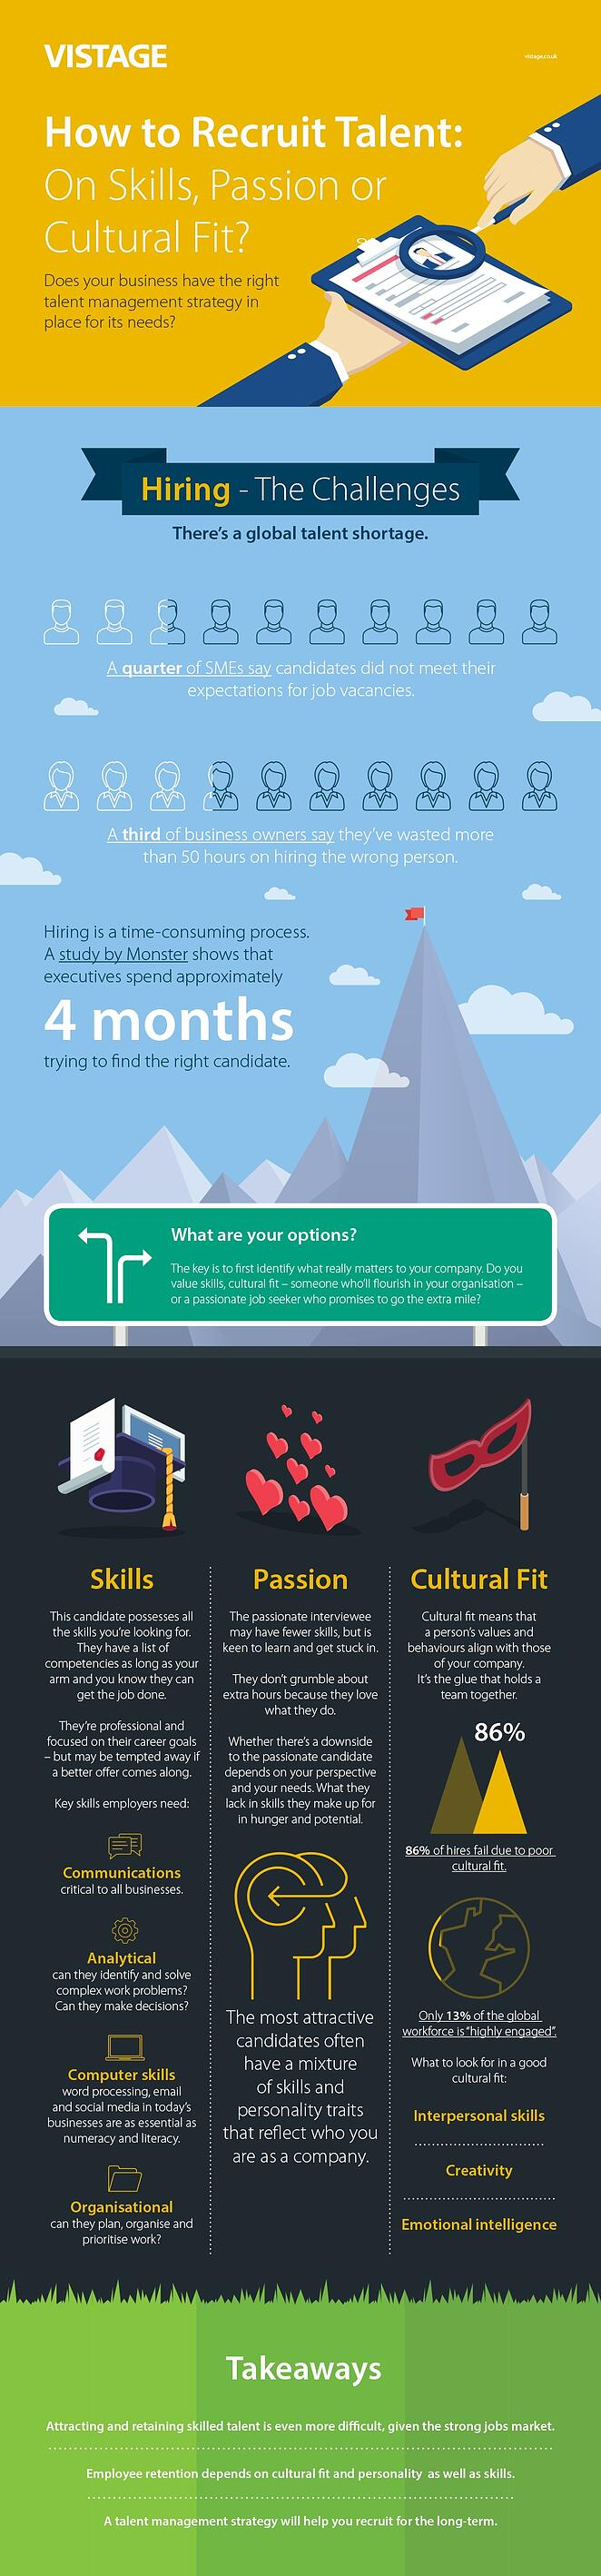 how-to-recruit-talent-on-skills-passion-or-cultural-v2.jpg